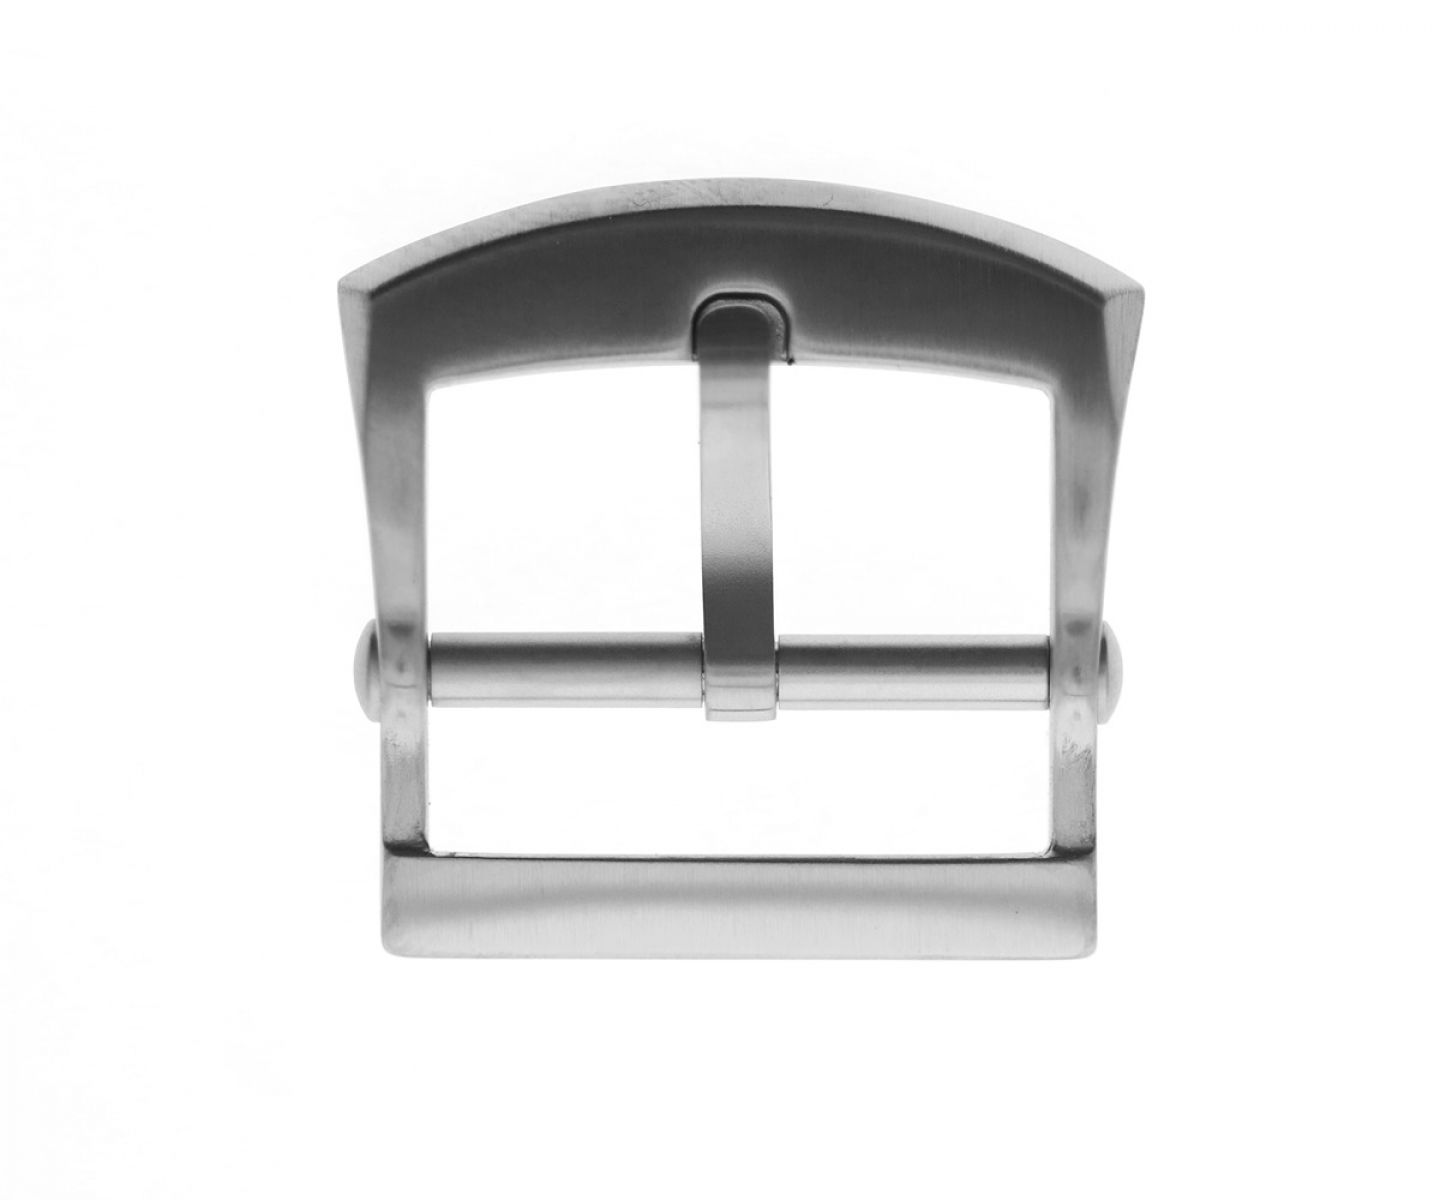 Stainless Steel High Grade Buckle 20mm. Silver Matte